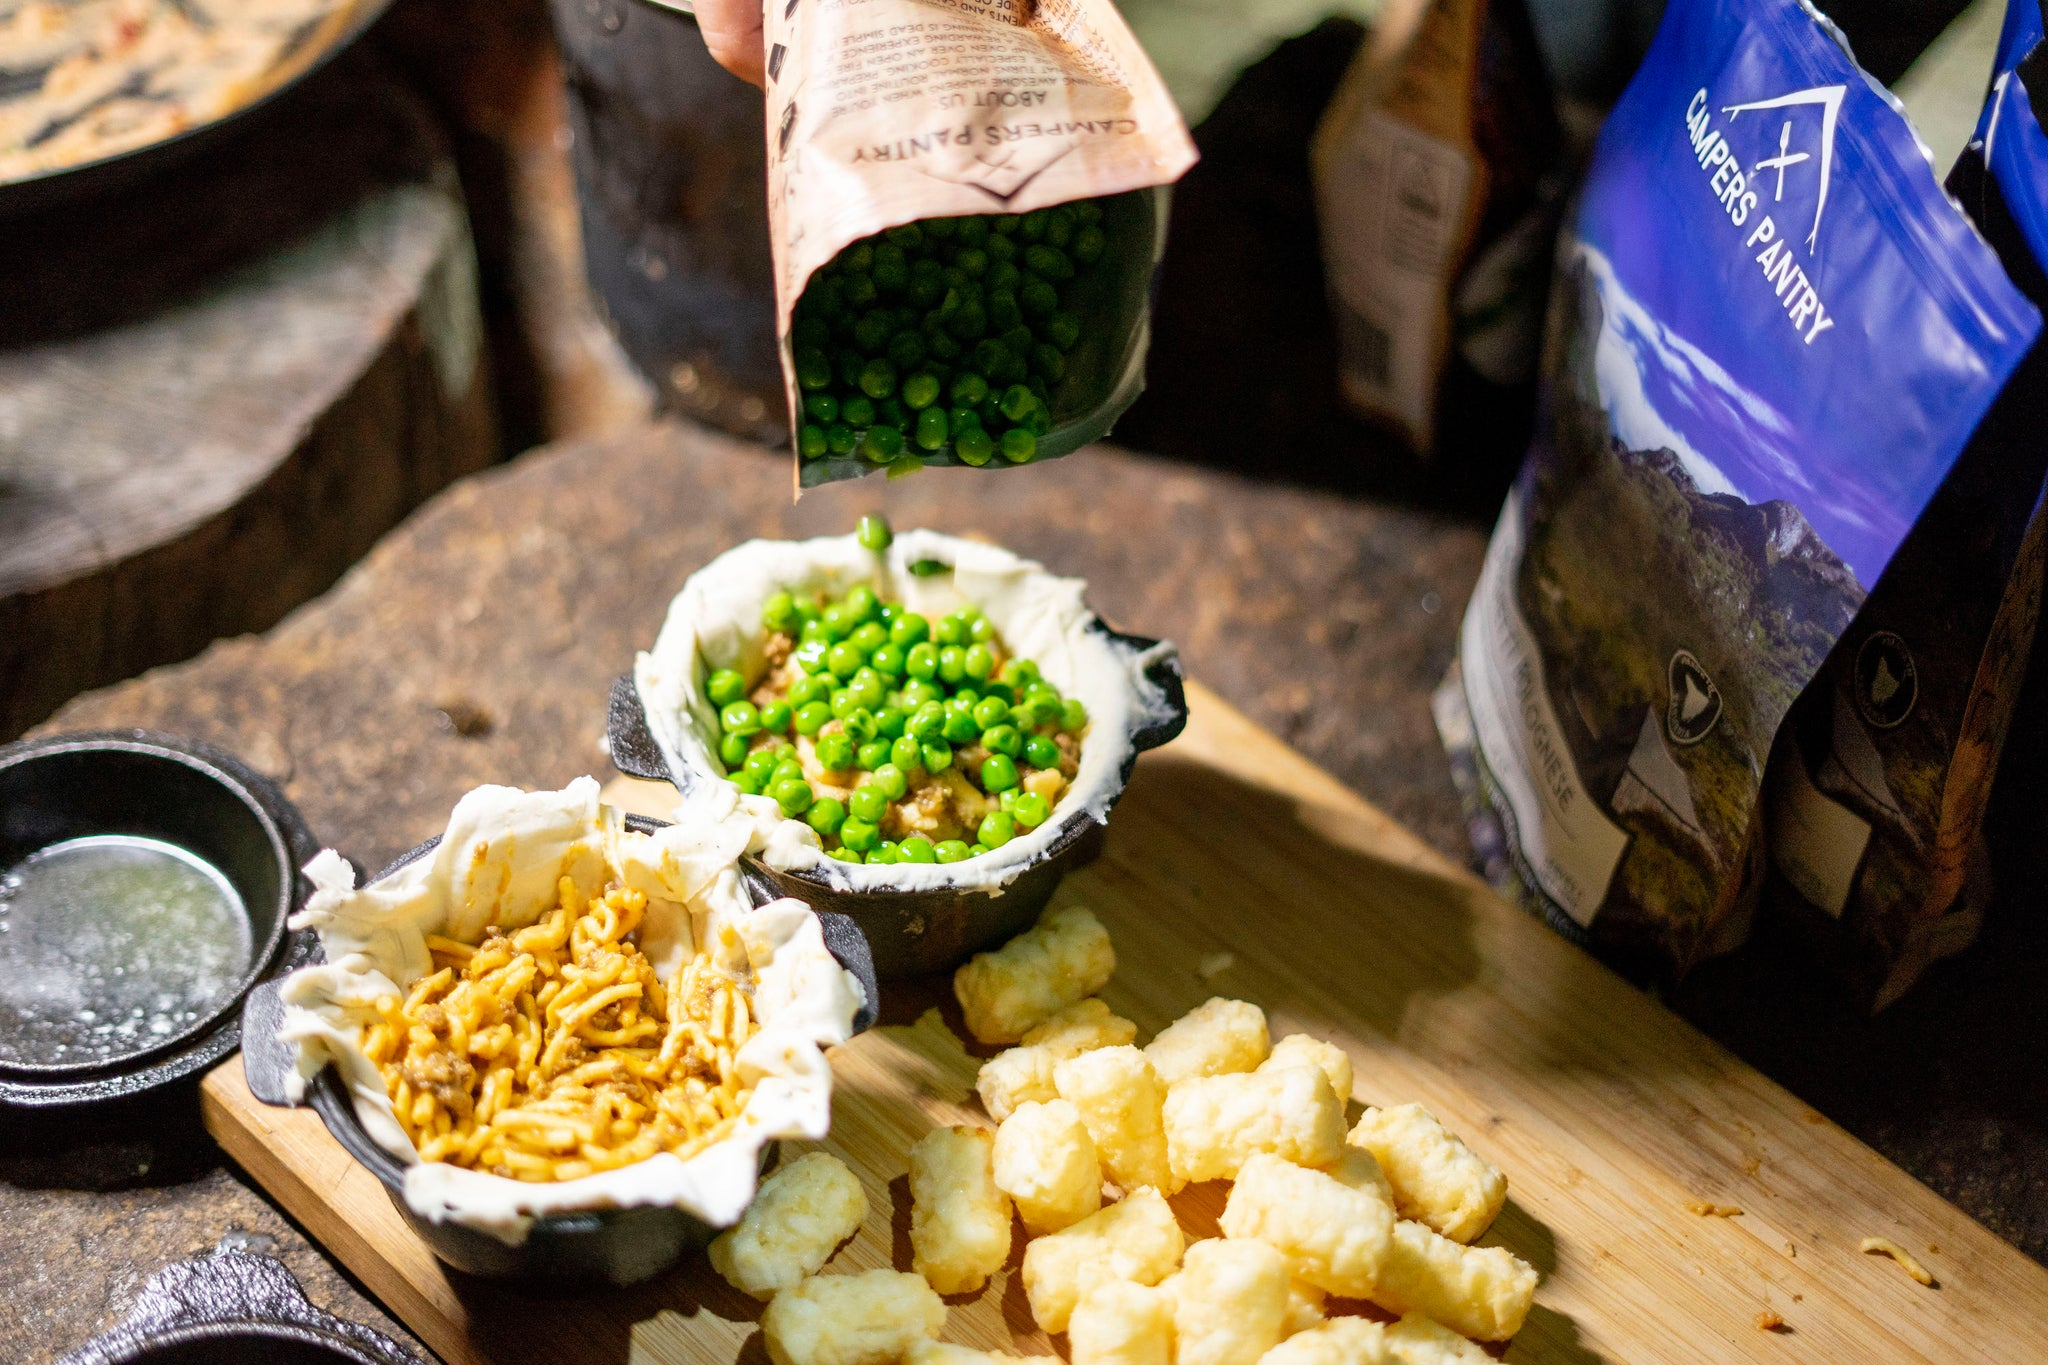 next step is adding Campers Pantry peas on the spag bol. make sure the peas are rehydrated first.